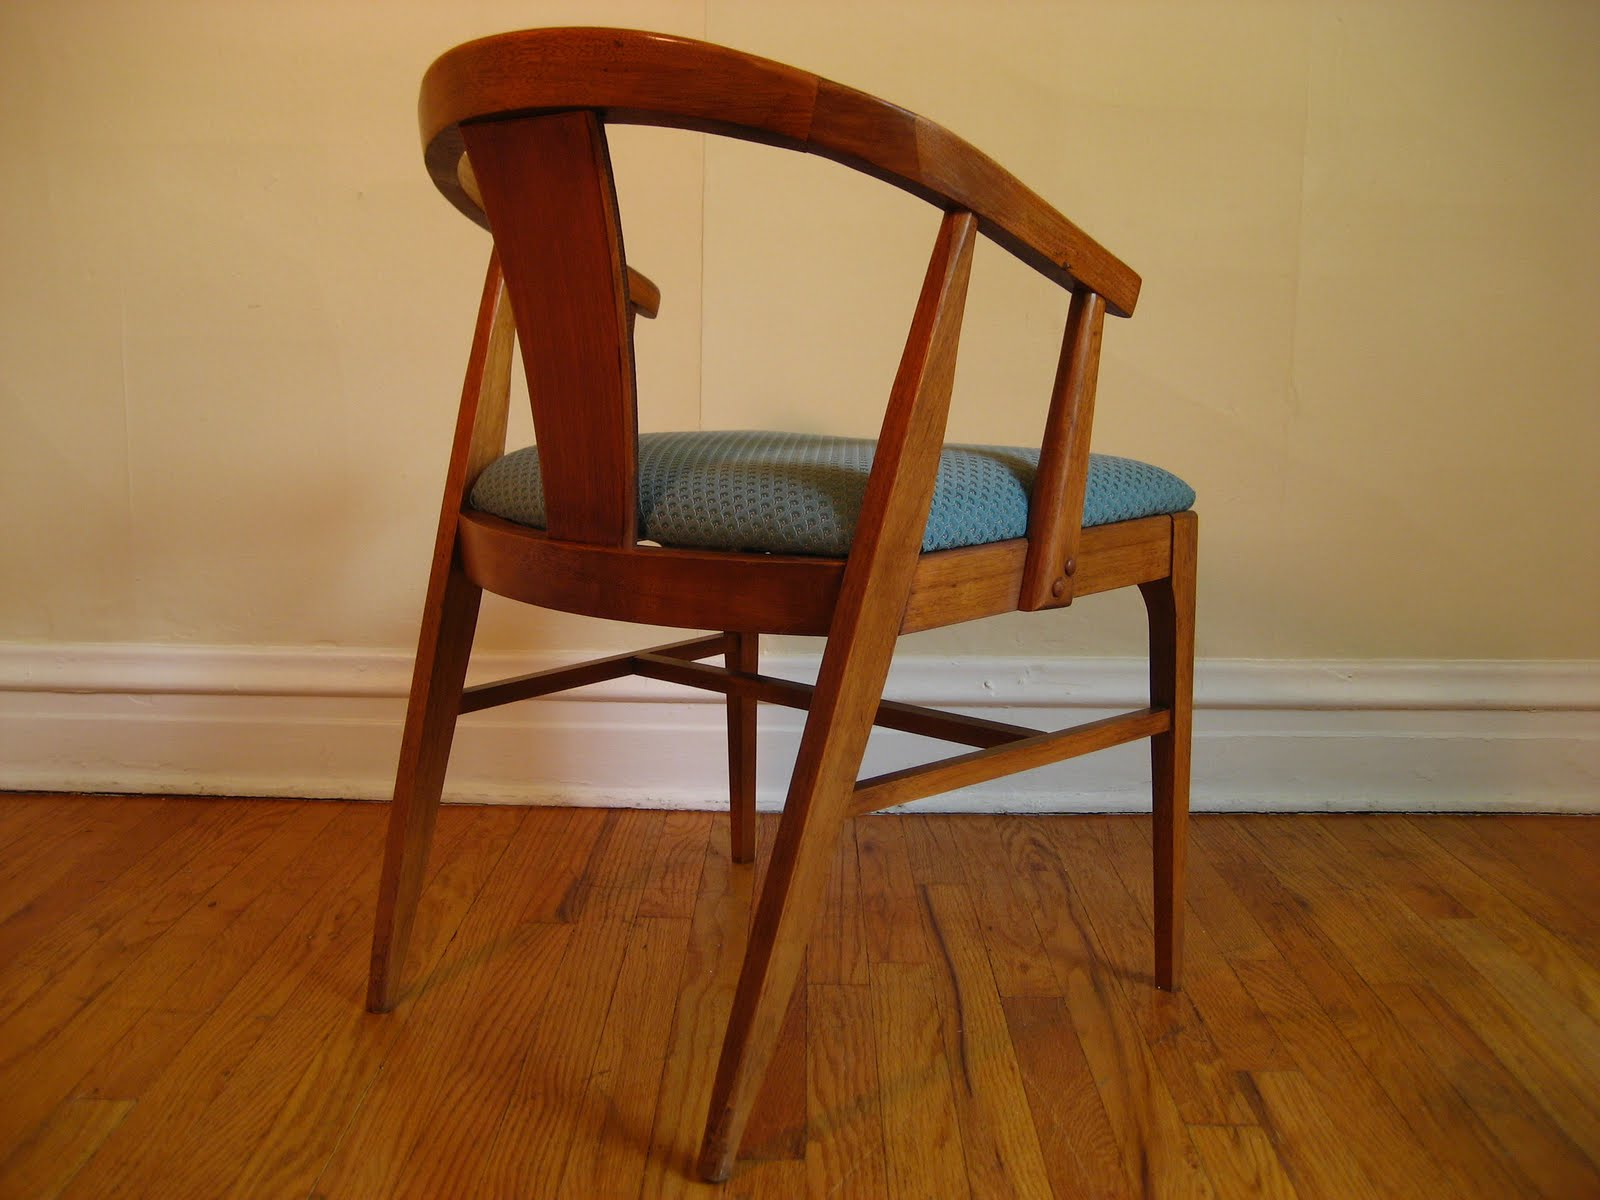 flatout design: Mid Century Modern Dining Chairs